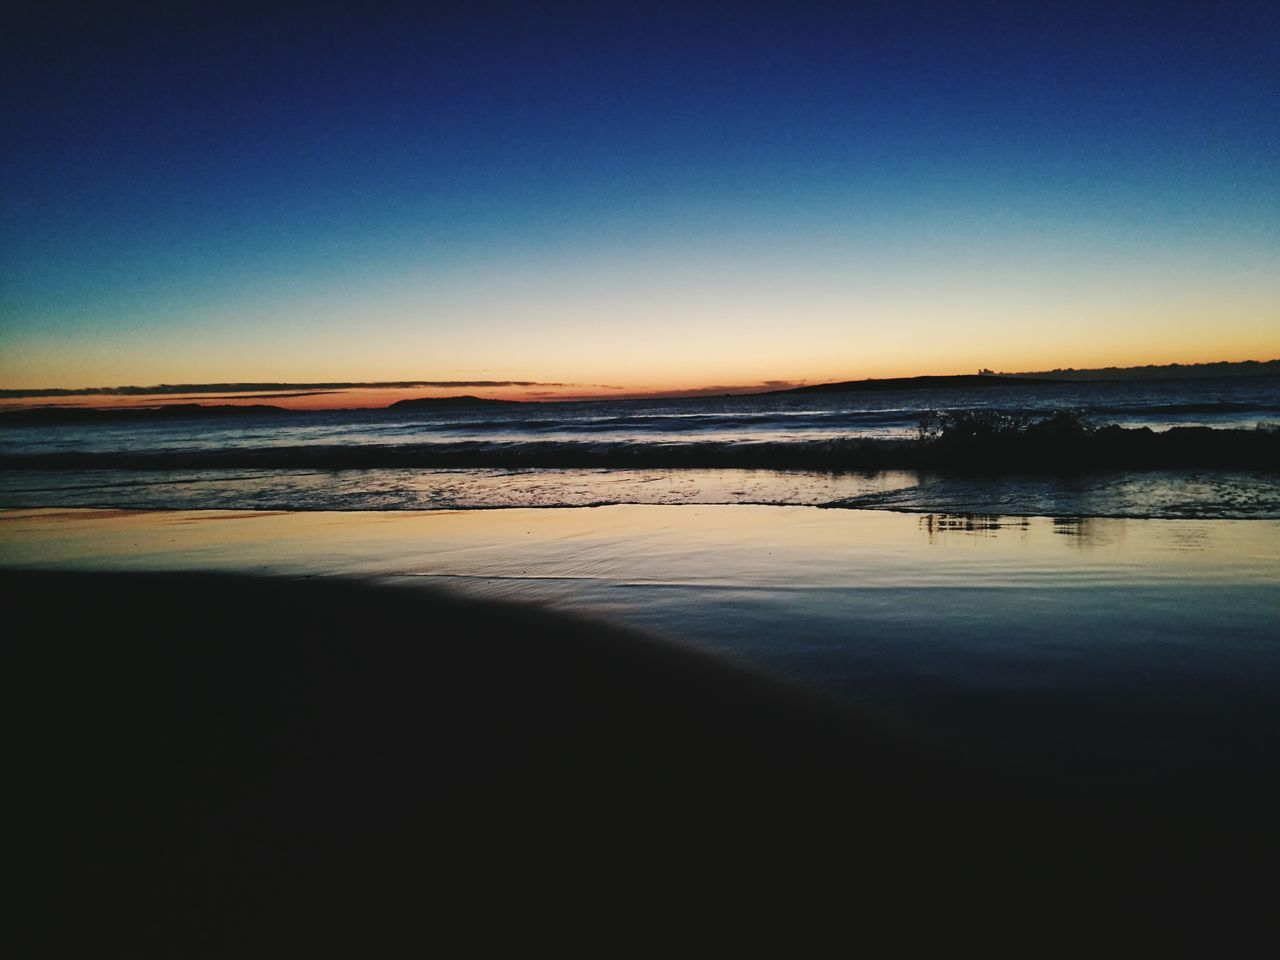 tranquility, tranquil scene, scenics, nature, water, beauty in nature, copy space, no people, reflection, outdoors, sunset, sky, silhouette, blue, clear sky, sea, beach, day